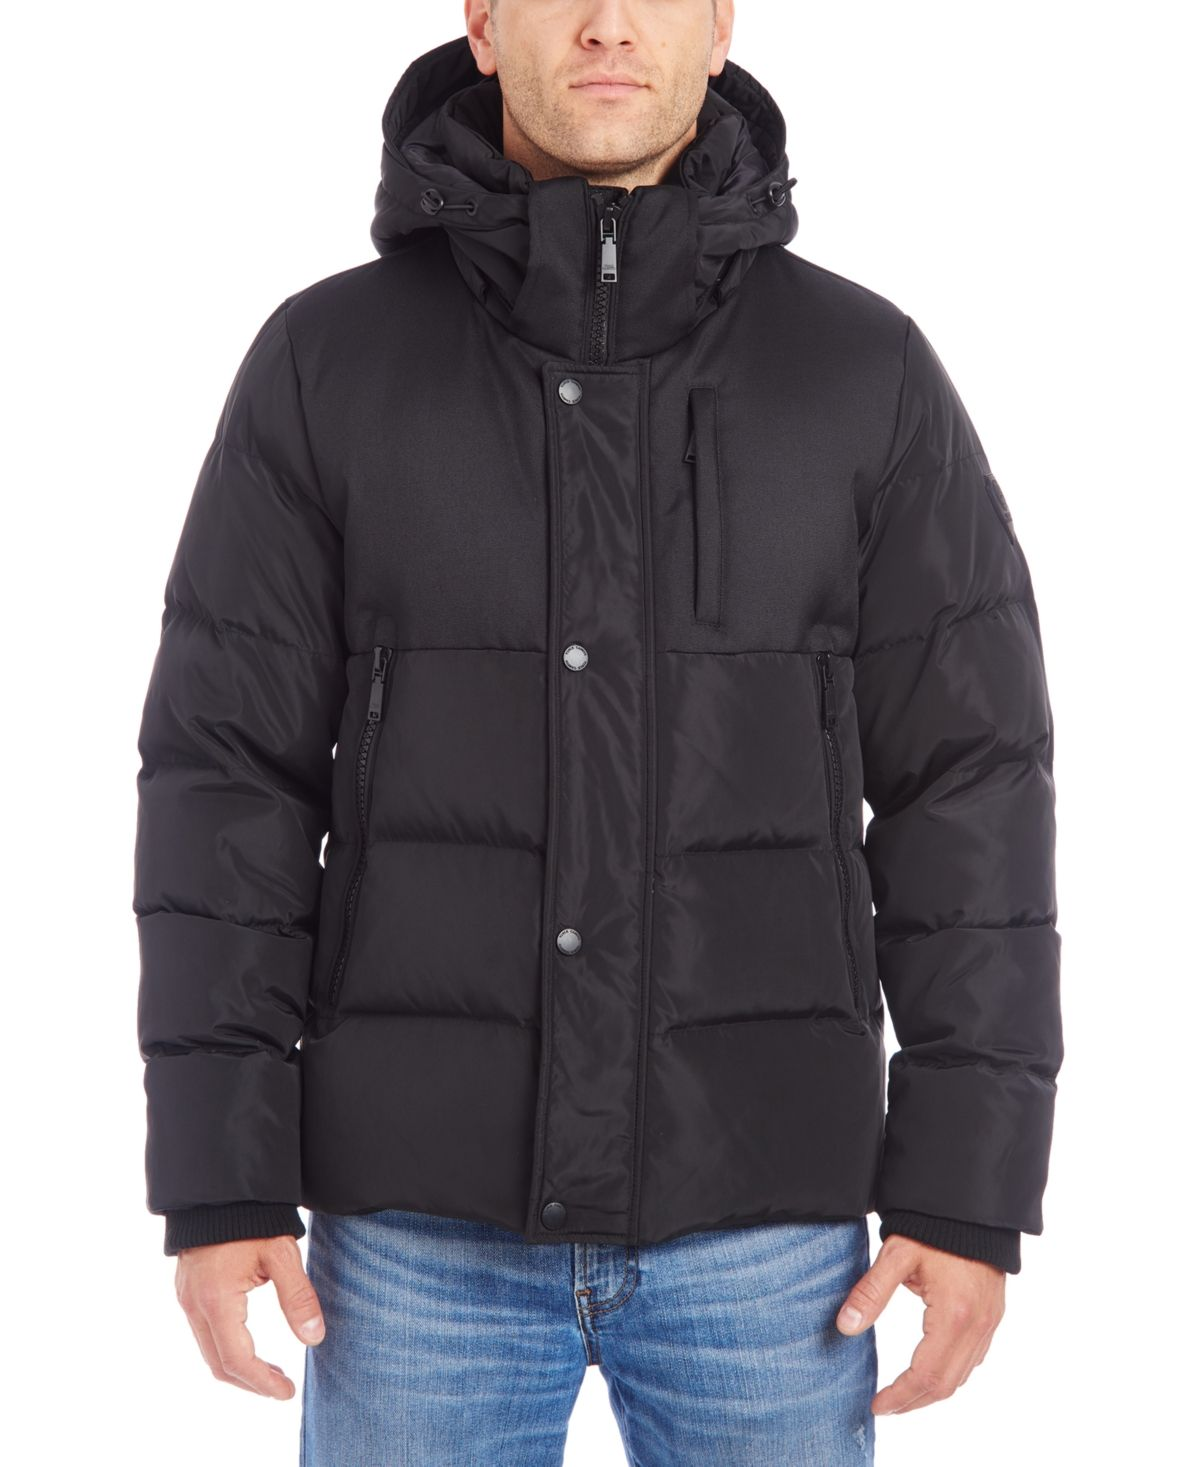 Vince Camuto Men S Hooded Puffer Jacket Reviews Coats Jackets Men Macy S In 2021 Mens Hooded Puffer Jackets Mens Jackets [ 1467 x 1200 Pixel ]